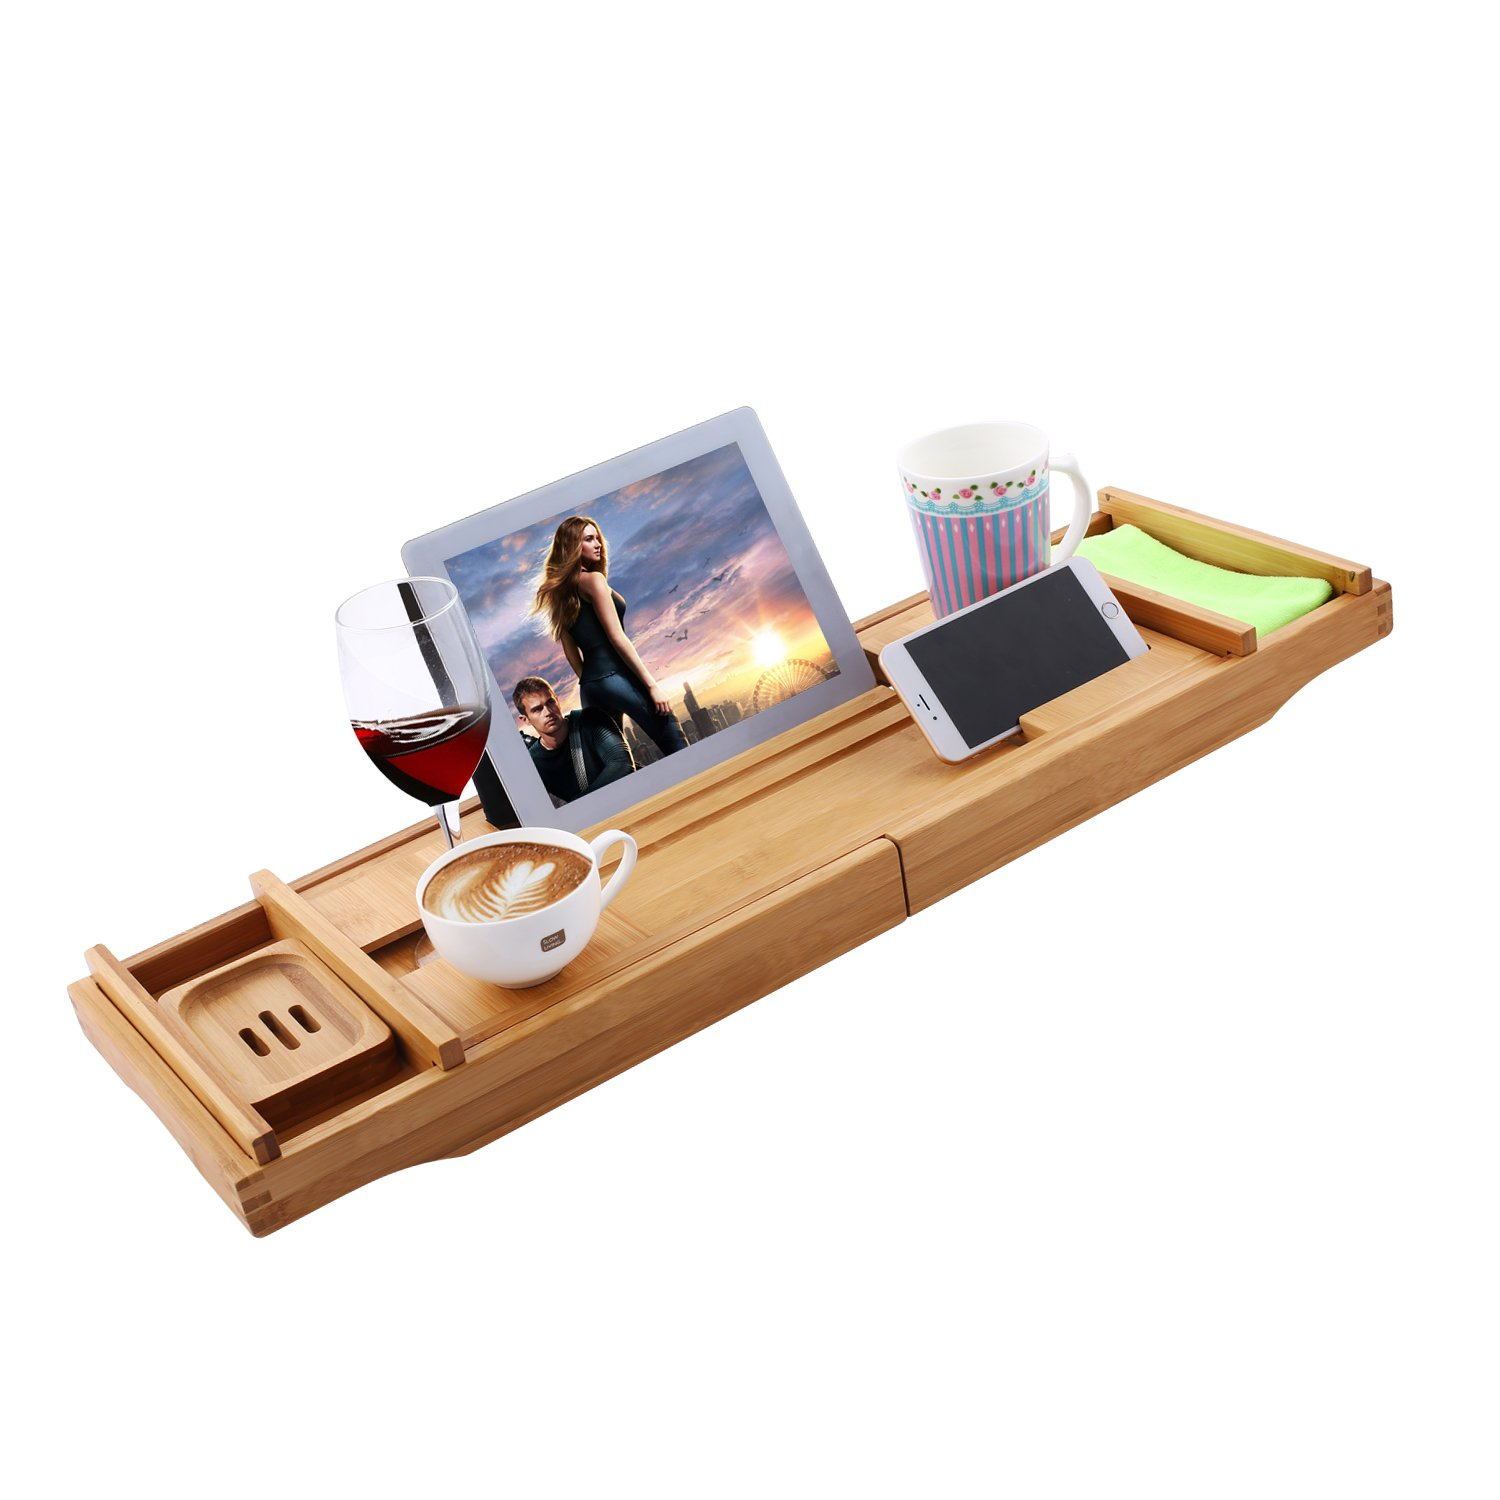 Adjustable 12 in 1 Bath Tube Caddy Tray, 1/2 Person SPA Bamboo Bathtub Caddy, Soap Dish| Wine Glass Holder, Book Reading Rack| Wooden Shelf (Bamboo) by Fashine (Image #4)